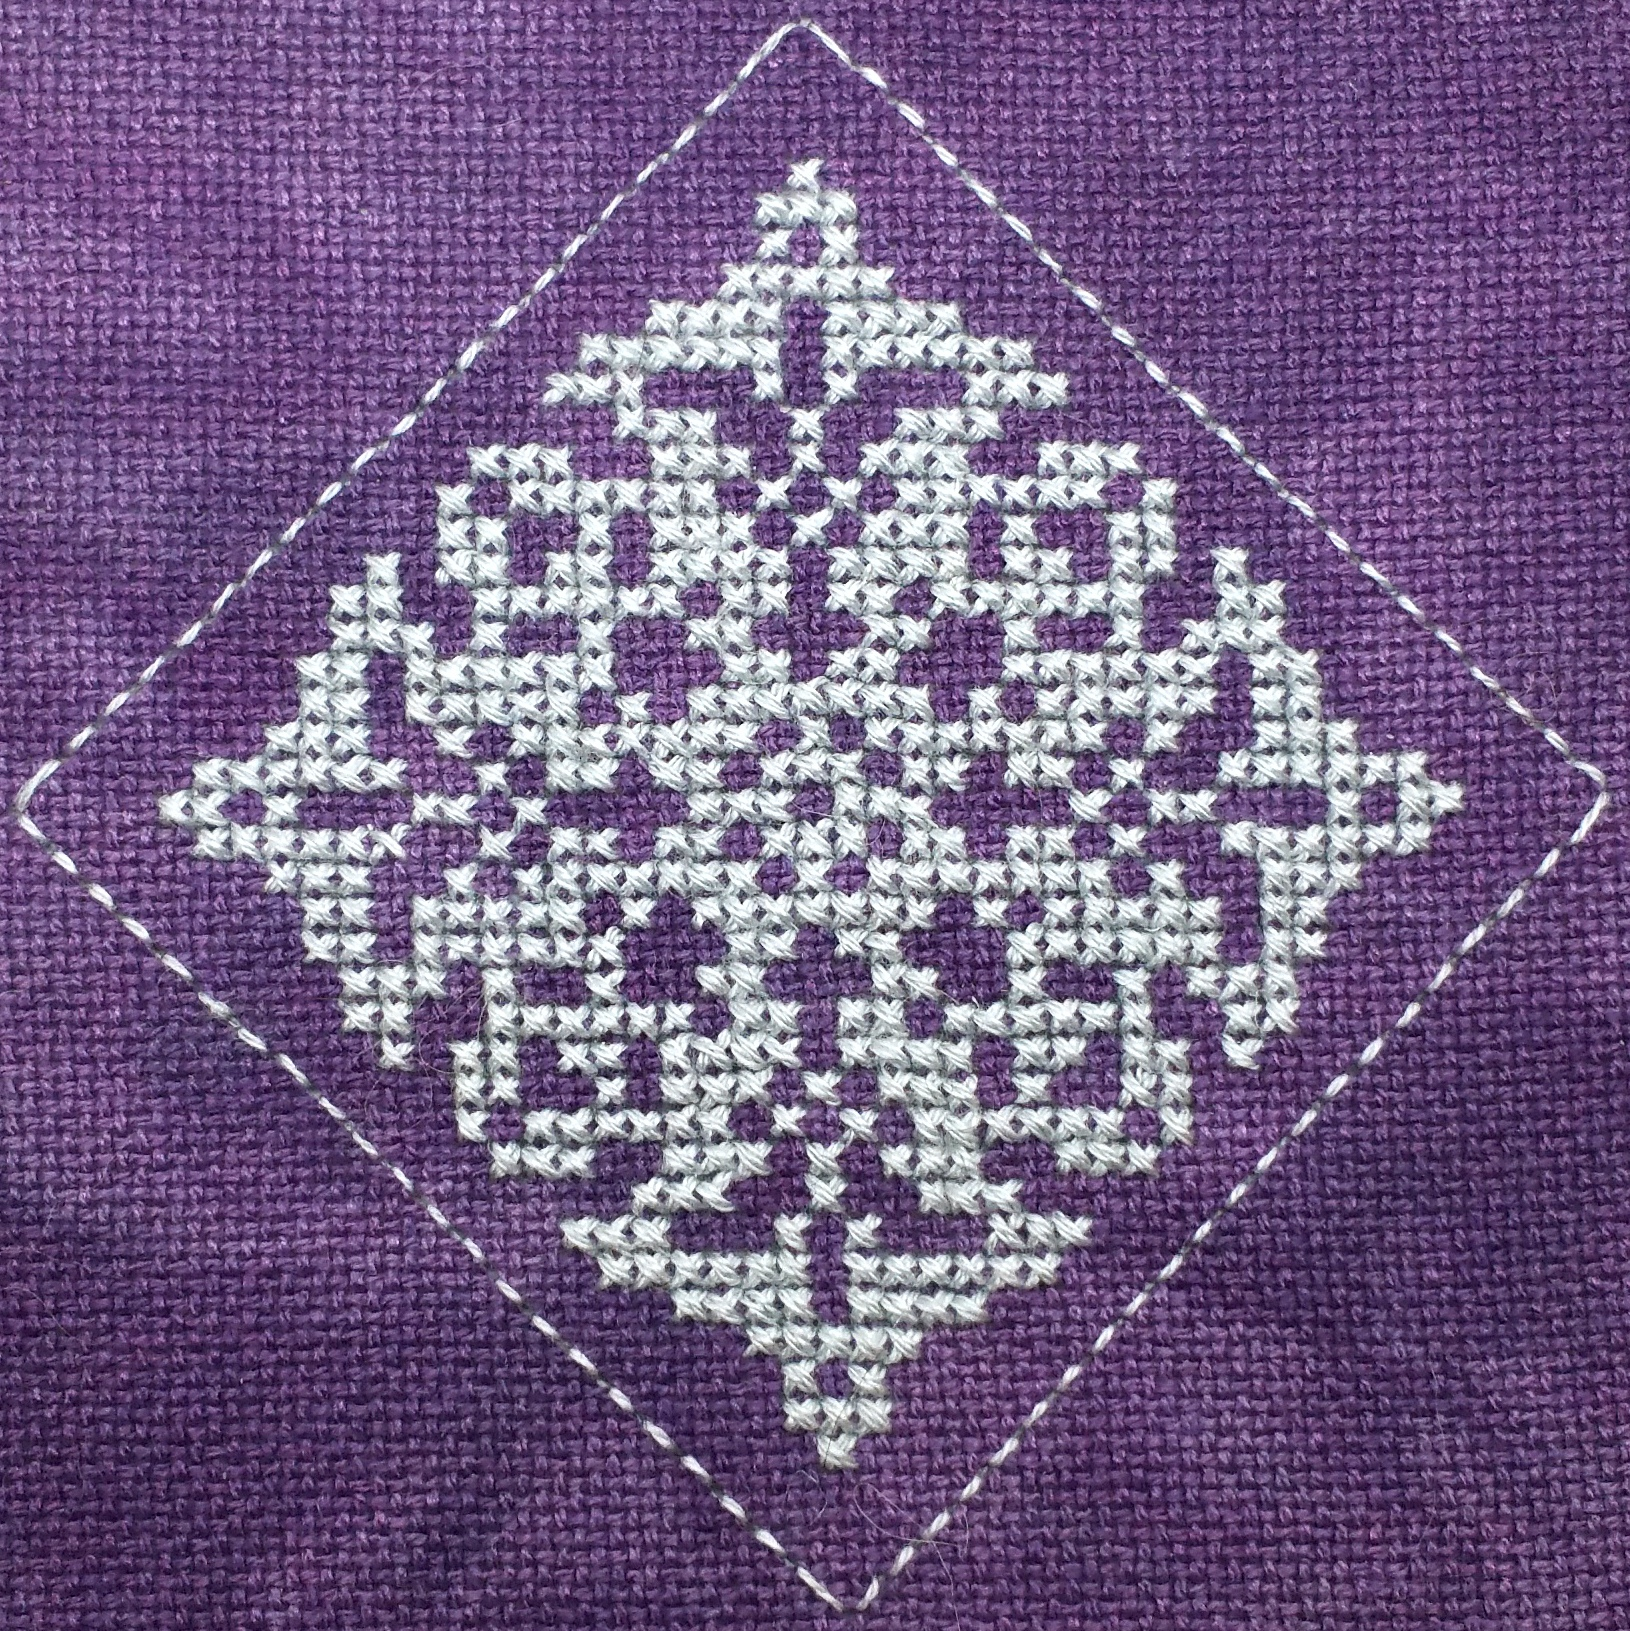 Silver Jewel stitched with back-stitch outline